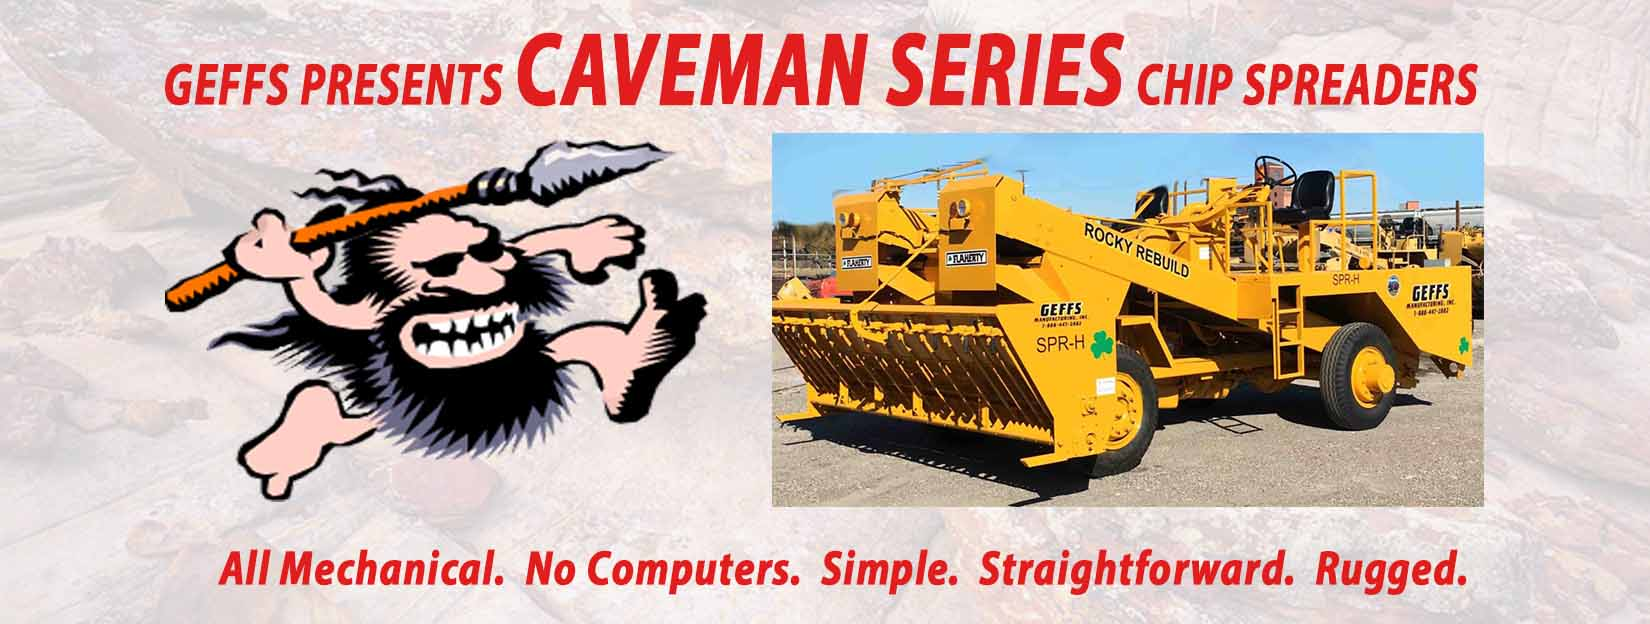 image of caveman chip spreader slider